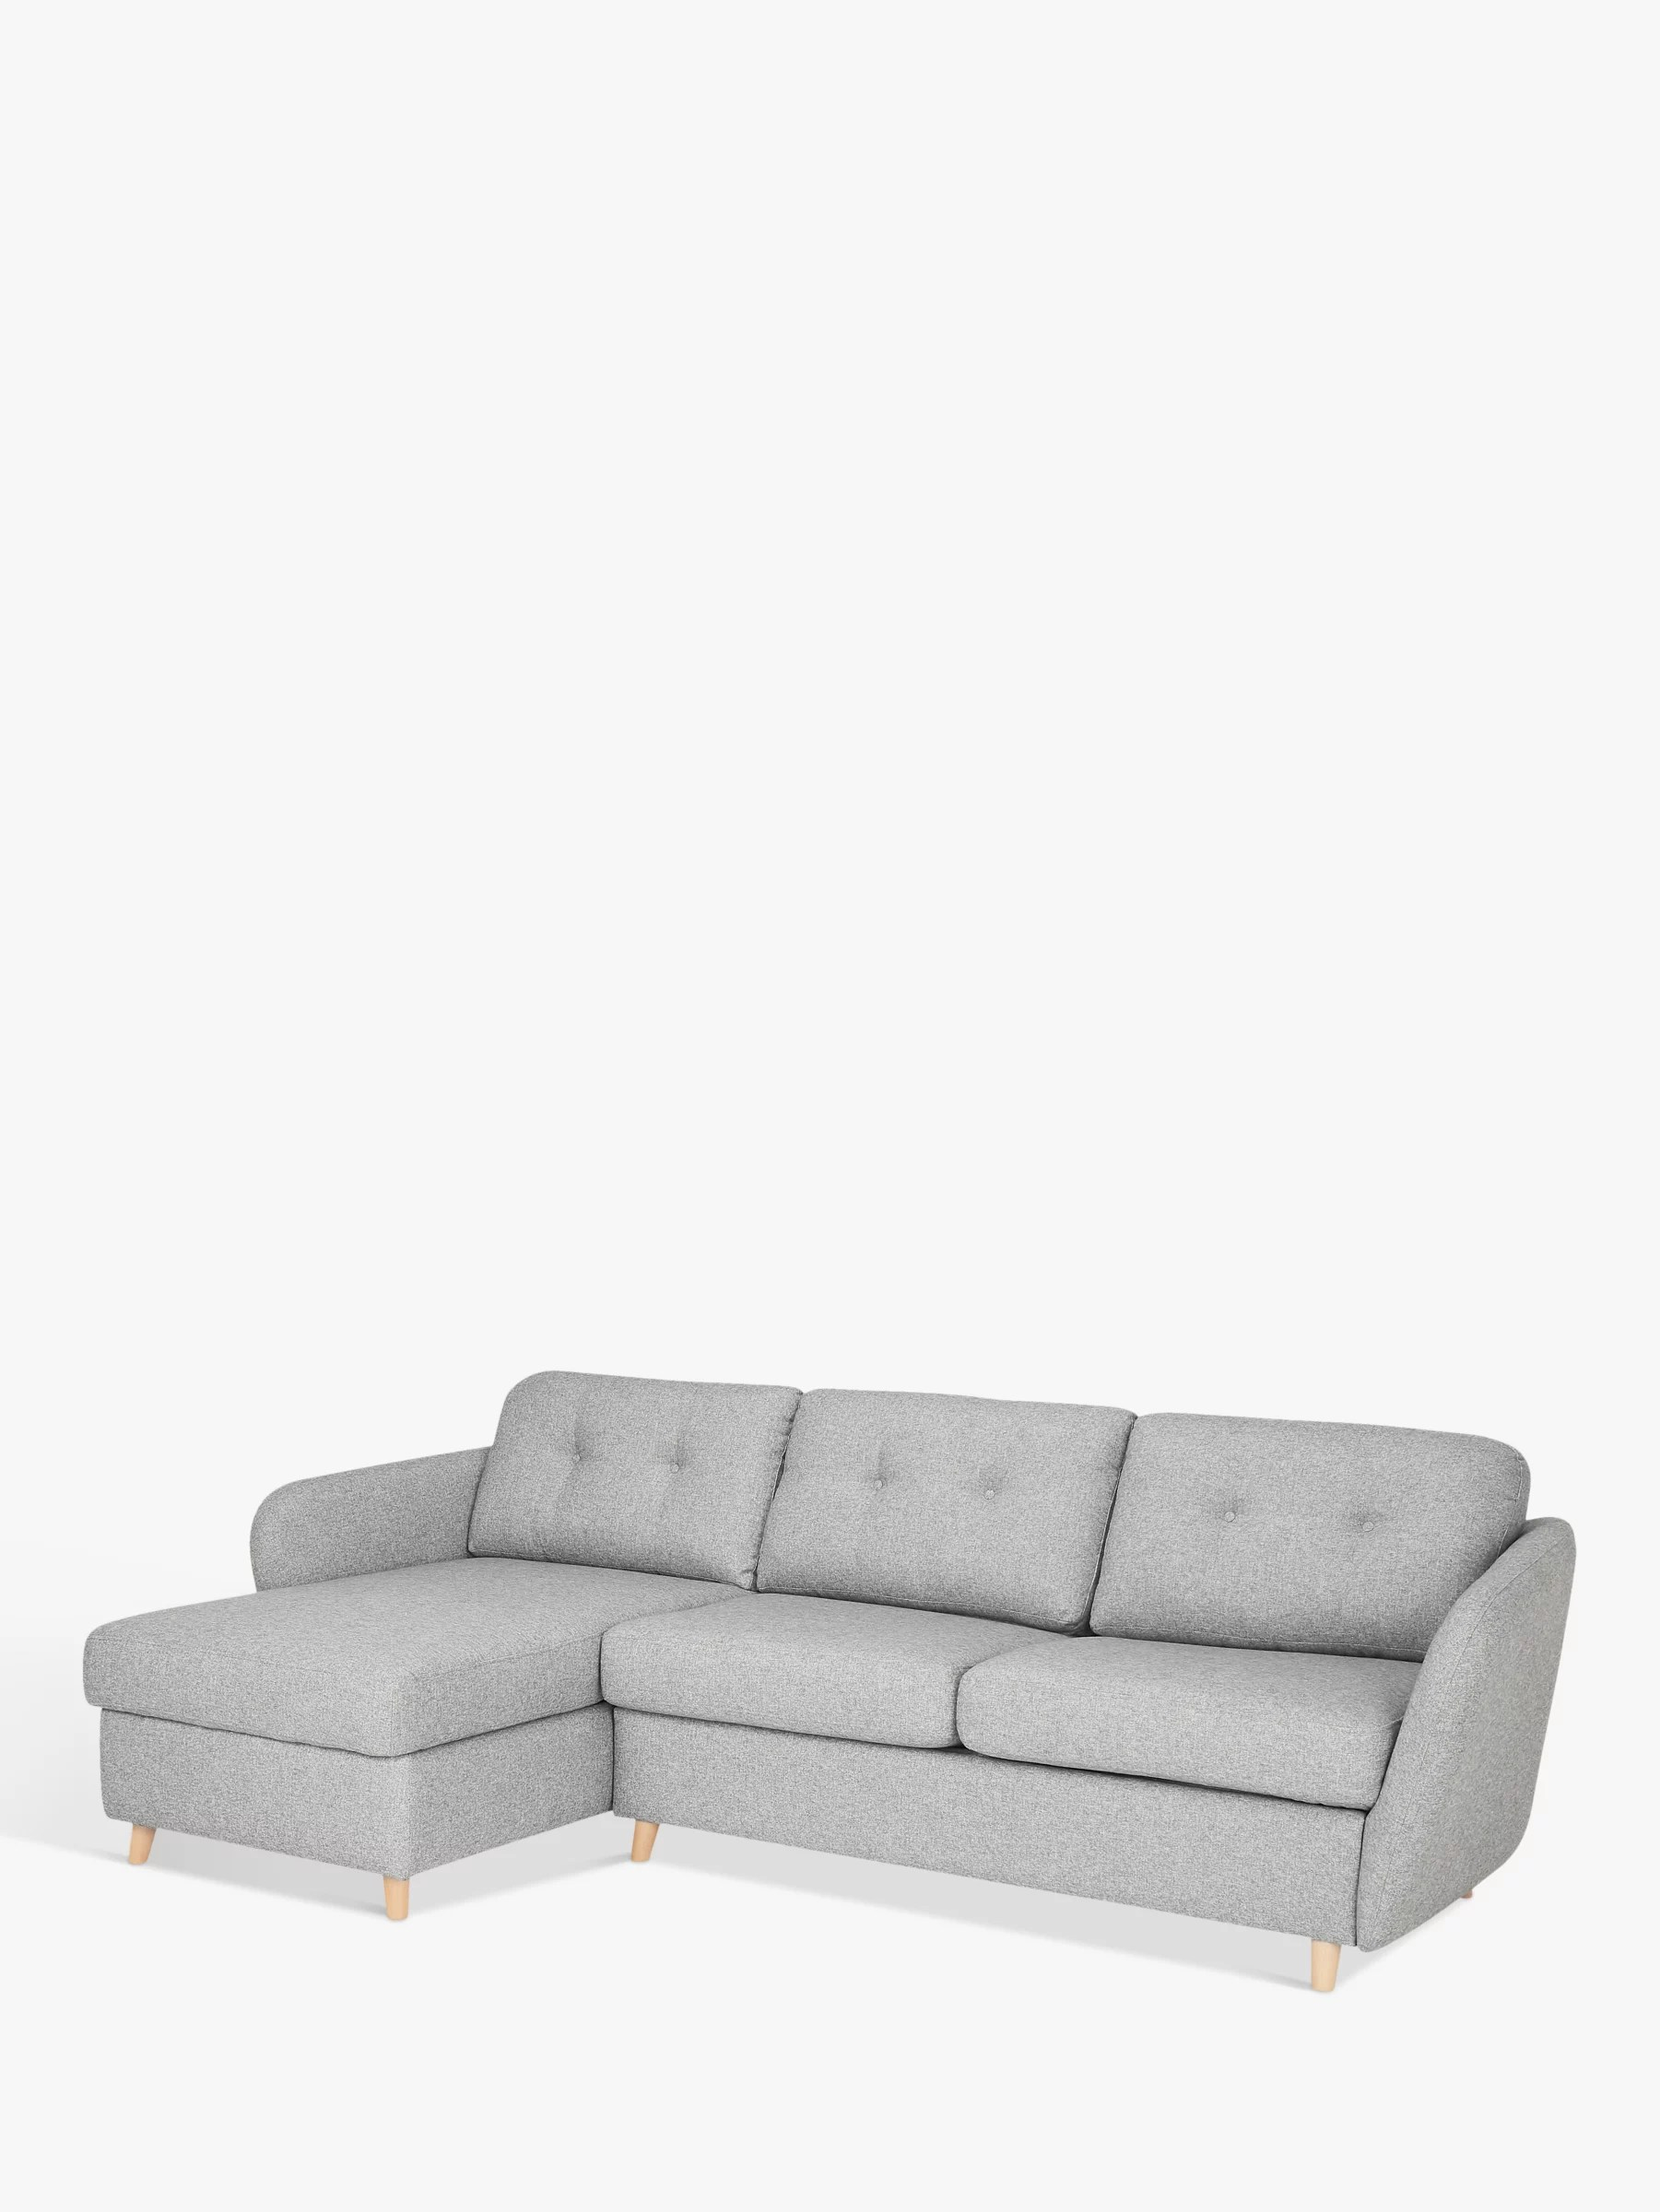 Sofa Bed Buy House By John Lewis Arlo Lhf Chaise With Storage Sofa Bed Light Leg